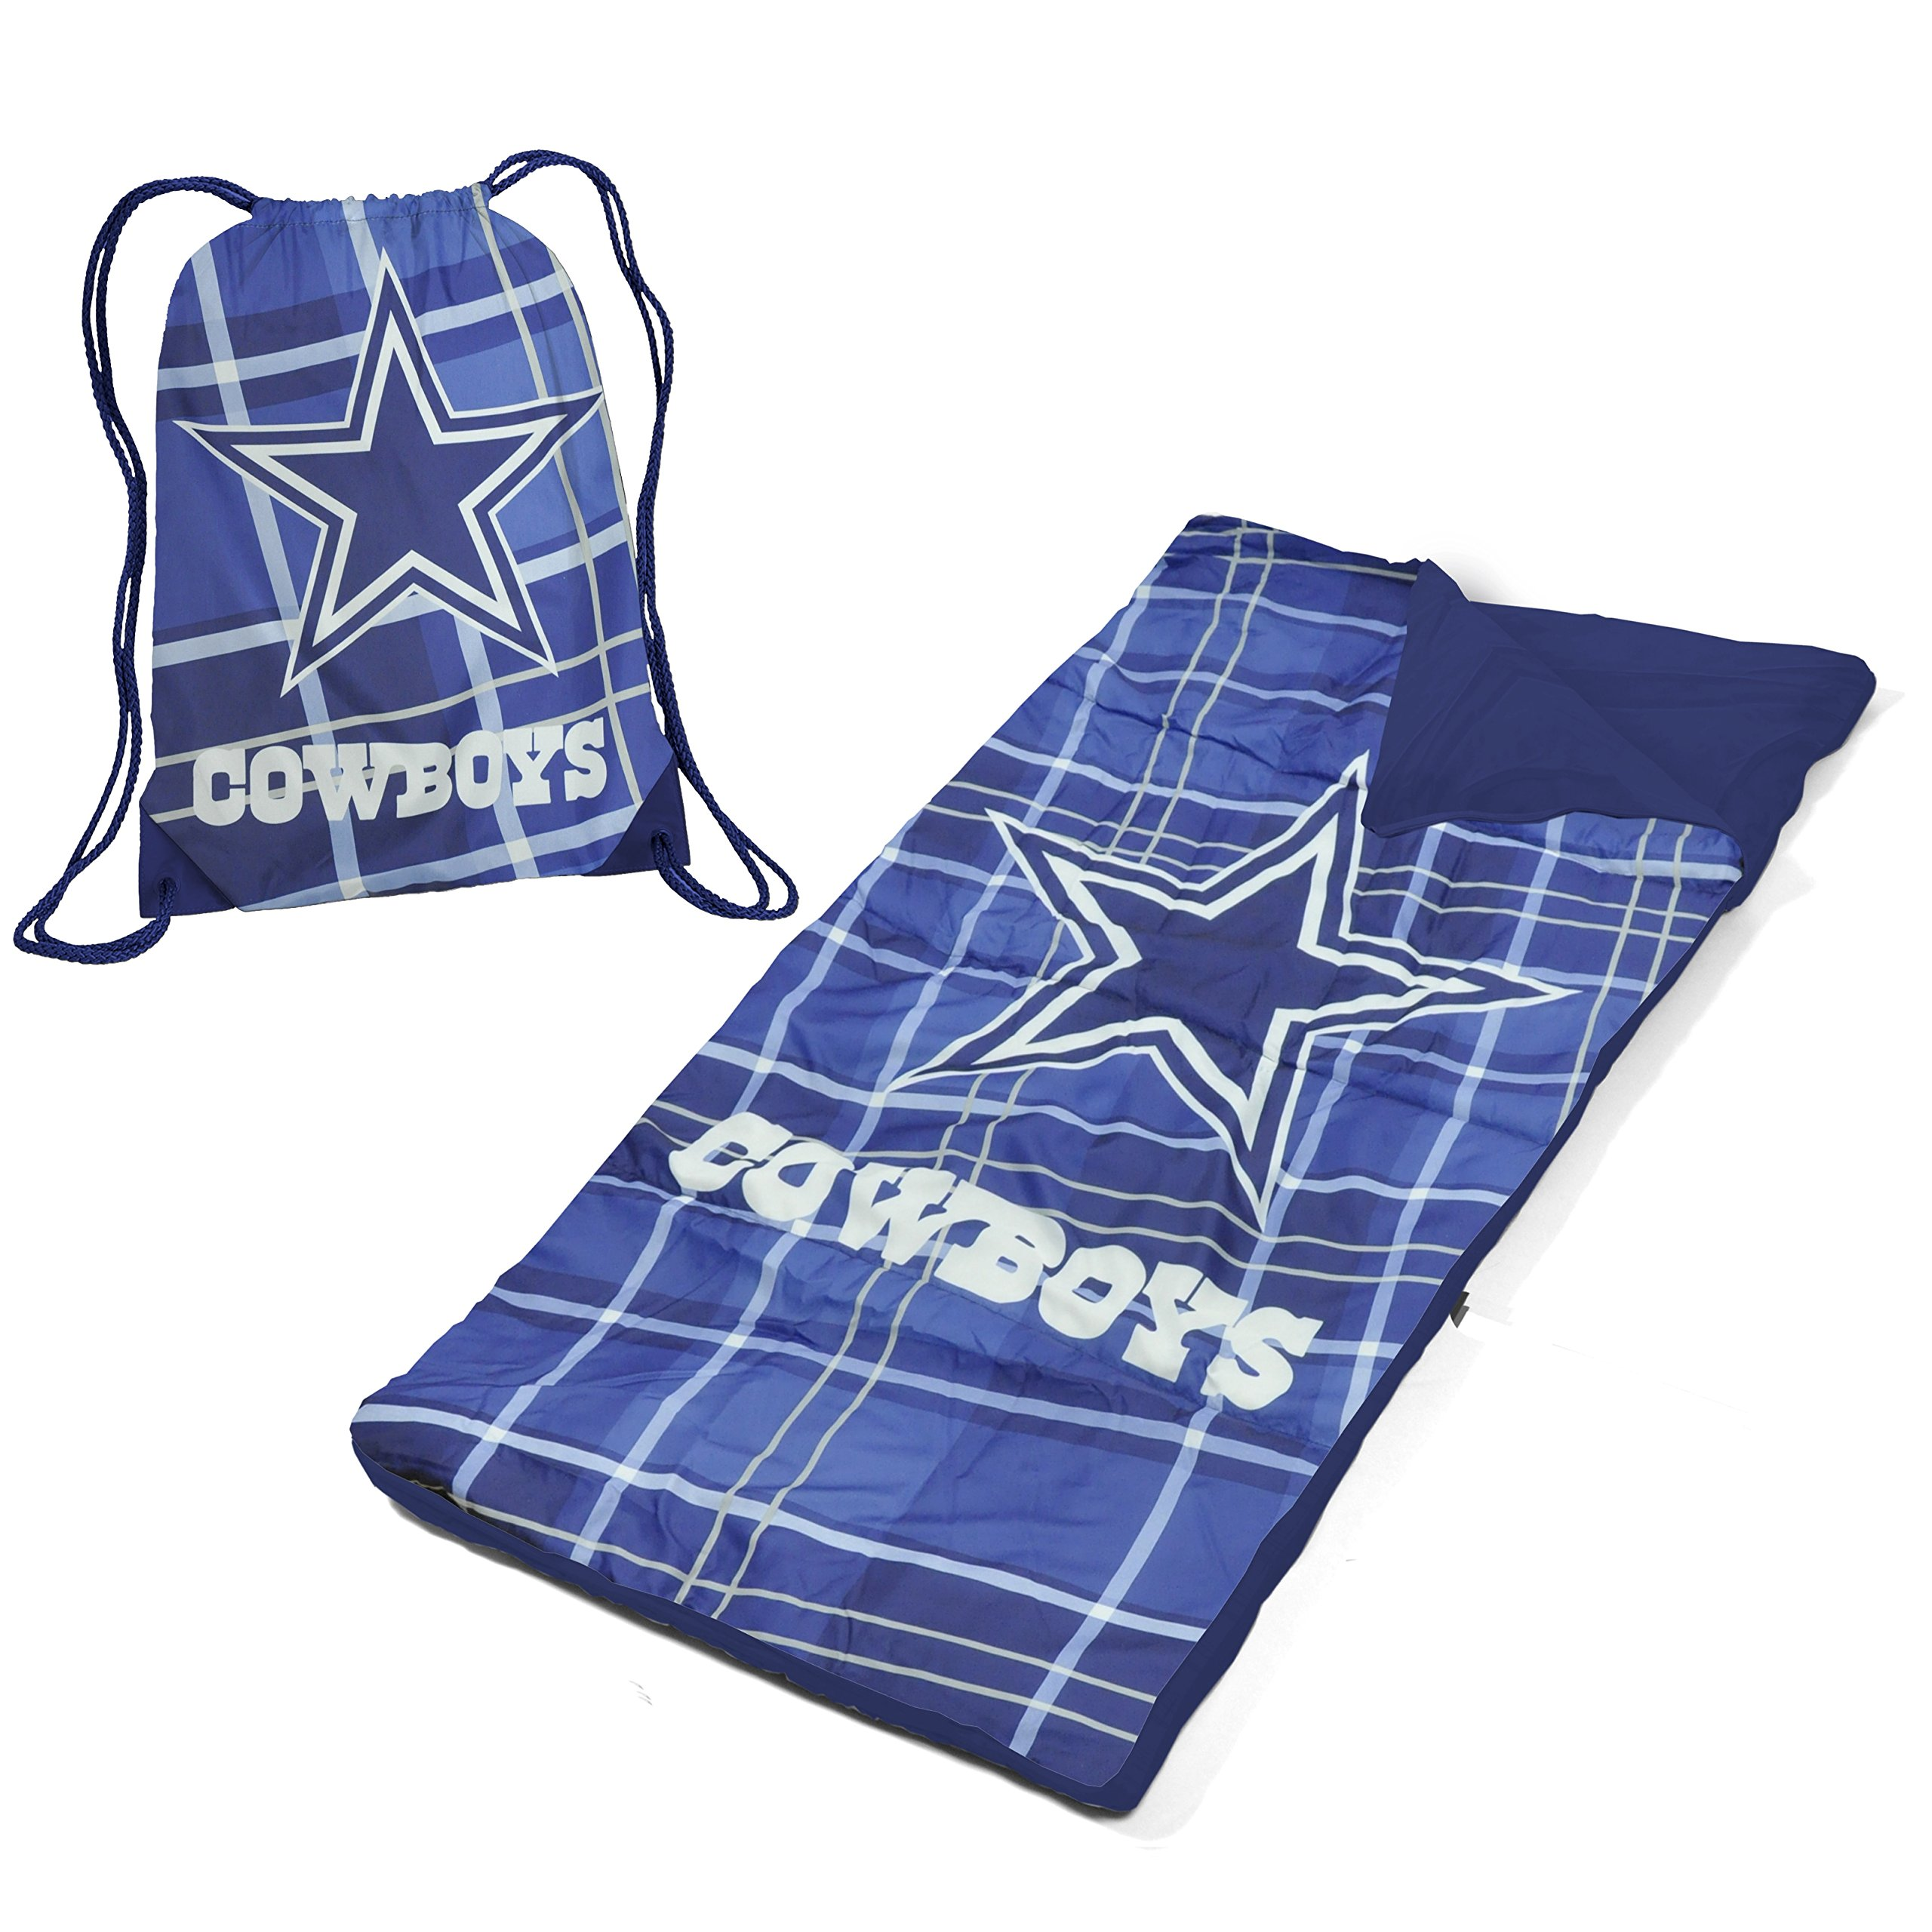 DE 2 Piece Kids Boys Blue White NFL Dallas Cowboys Themed Sleeping Bag, American Sports Football Team Sleep Sack Nap Mat, Madras Plaid Pattern String Bag Light Travel Bed Roll, Polyester